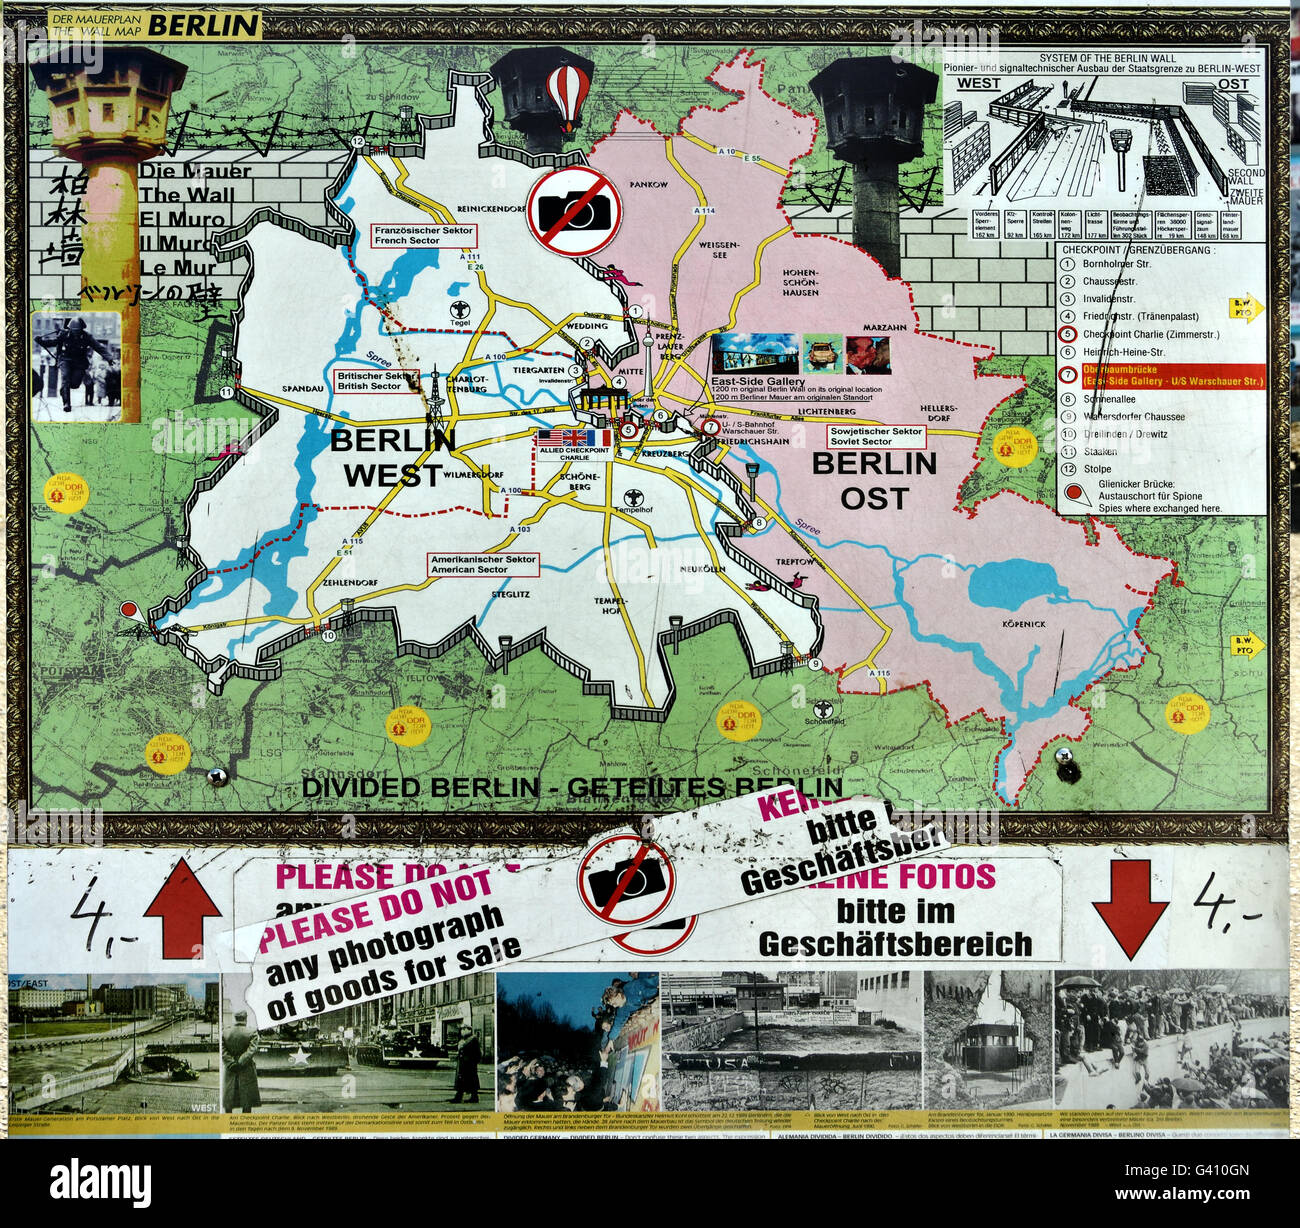 West Germany Map Stock Photos & West Germany Map Stock Images - Alamy